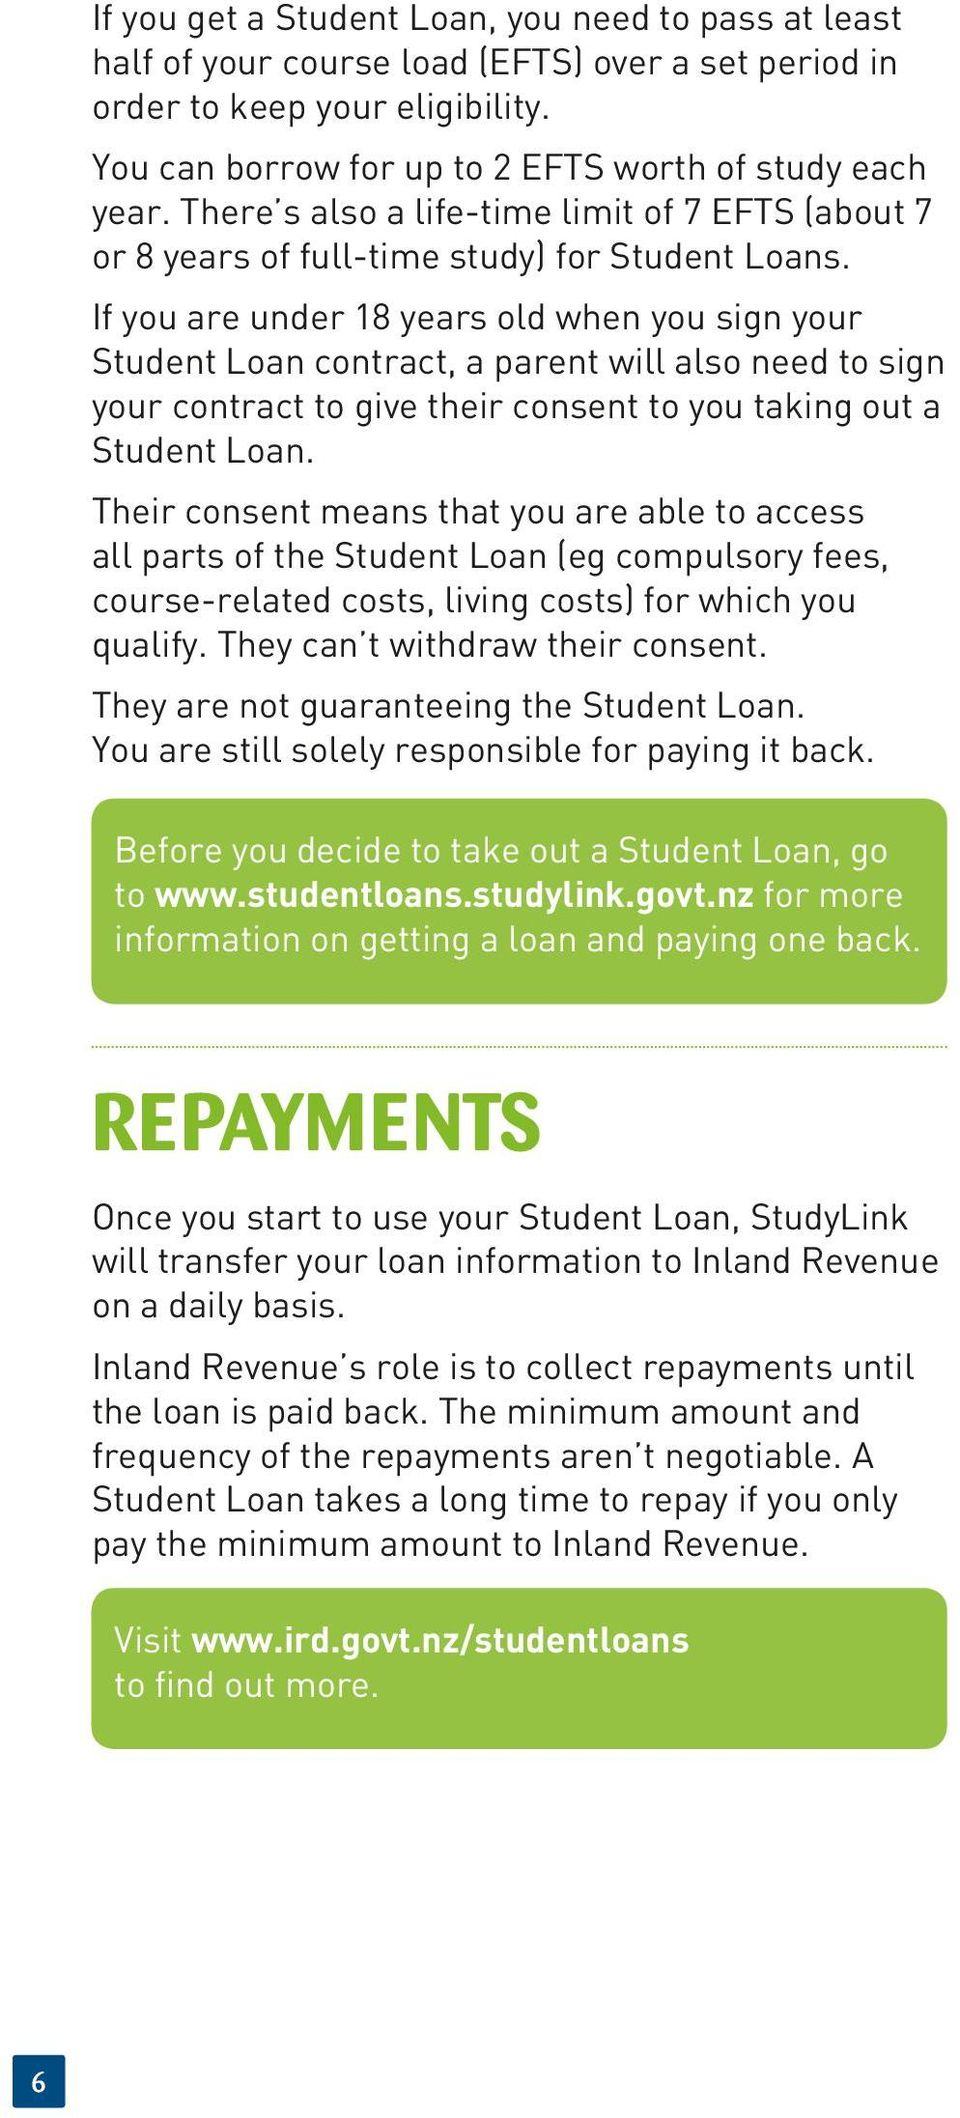 If you are under 18 years old when you sign your Student Loan contract, a parent will also need to sign your contract to give their consent to you taking out a Student Loan.